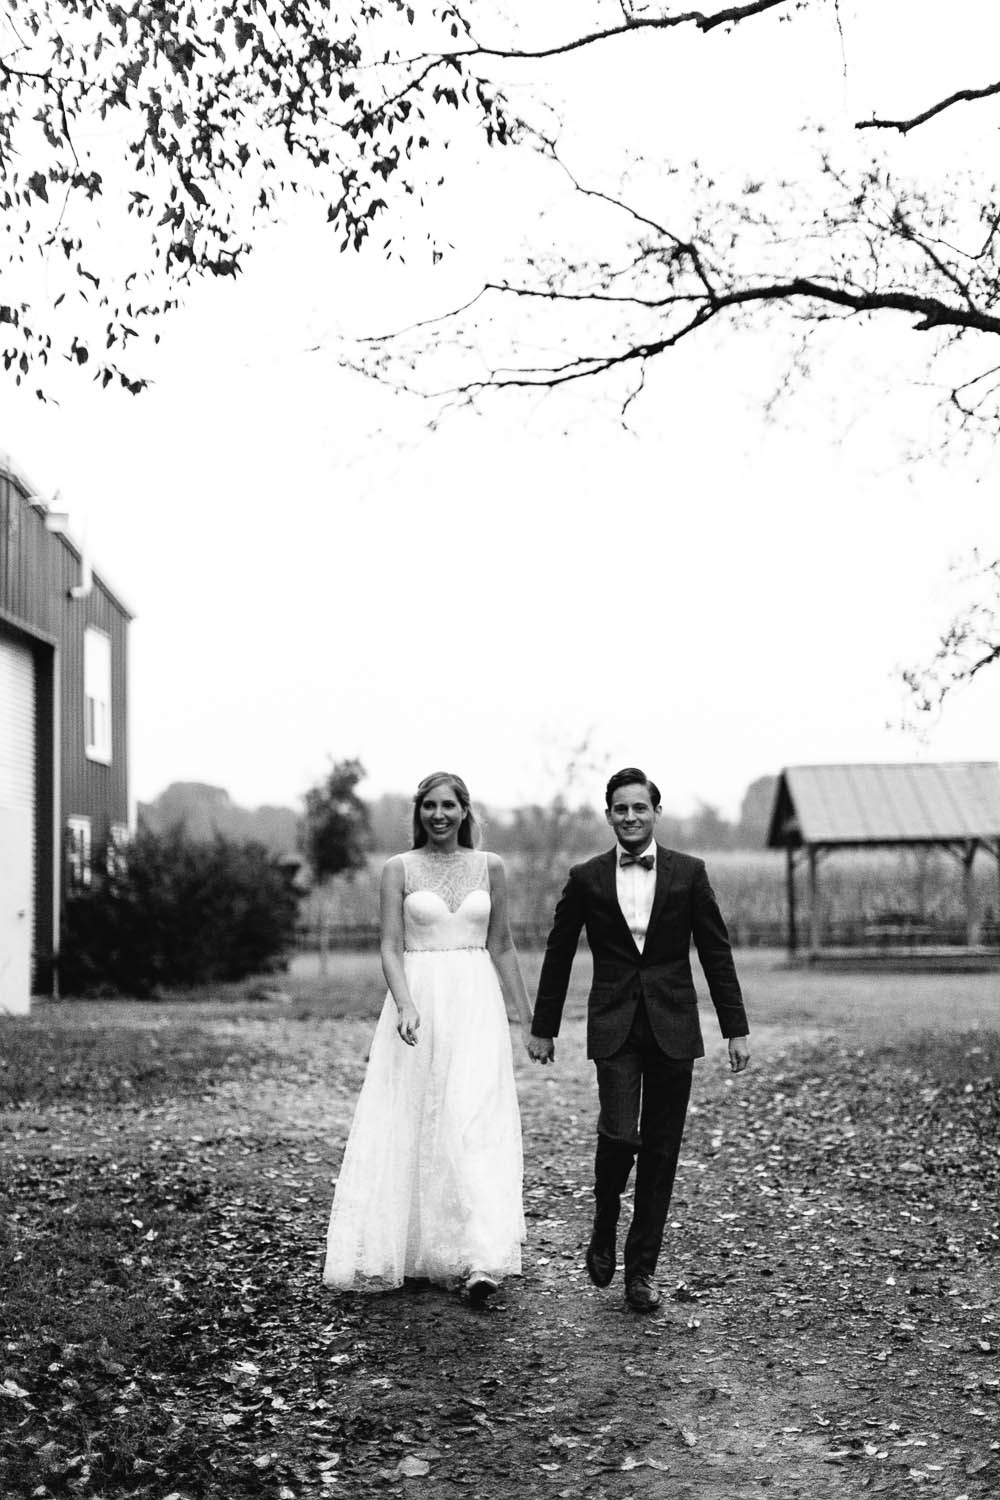 southall meadows wedding photographers natural film documentary real life wedding photographer ©2016abigailbobophotography-63.jpg